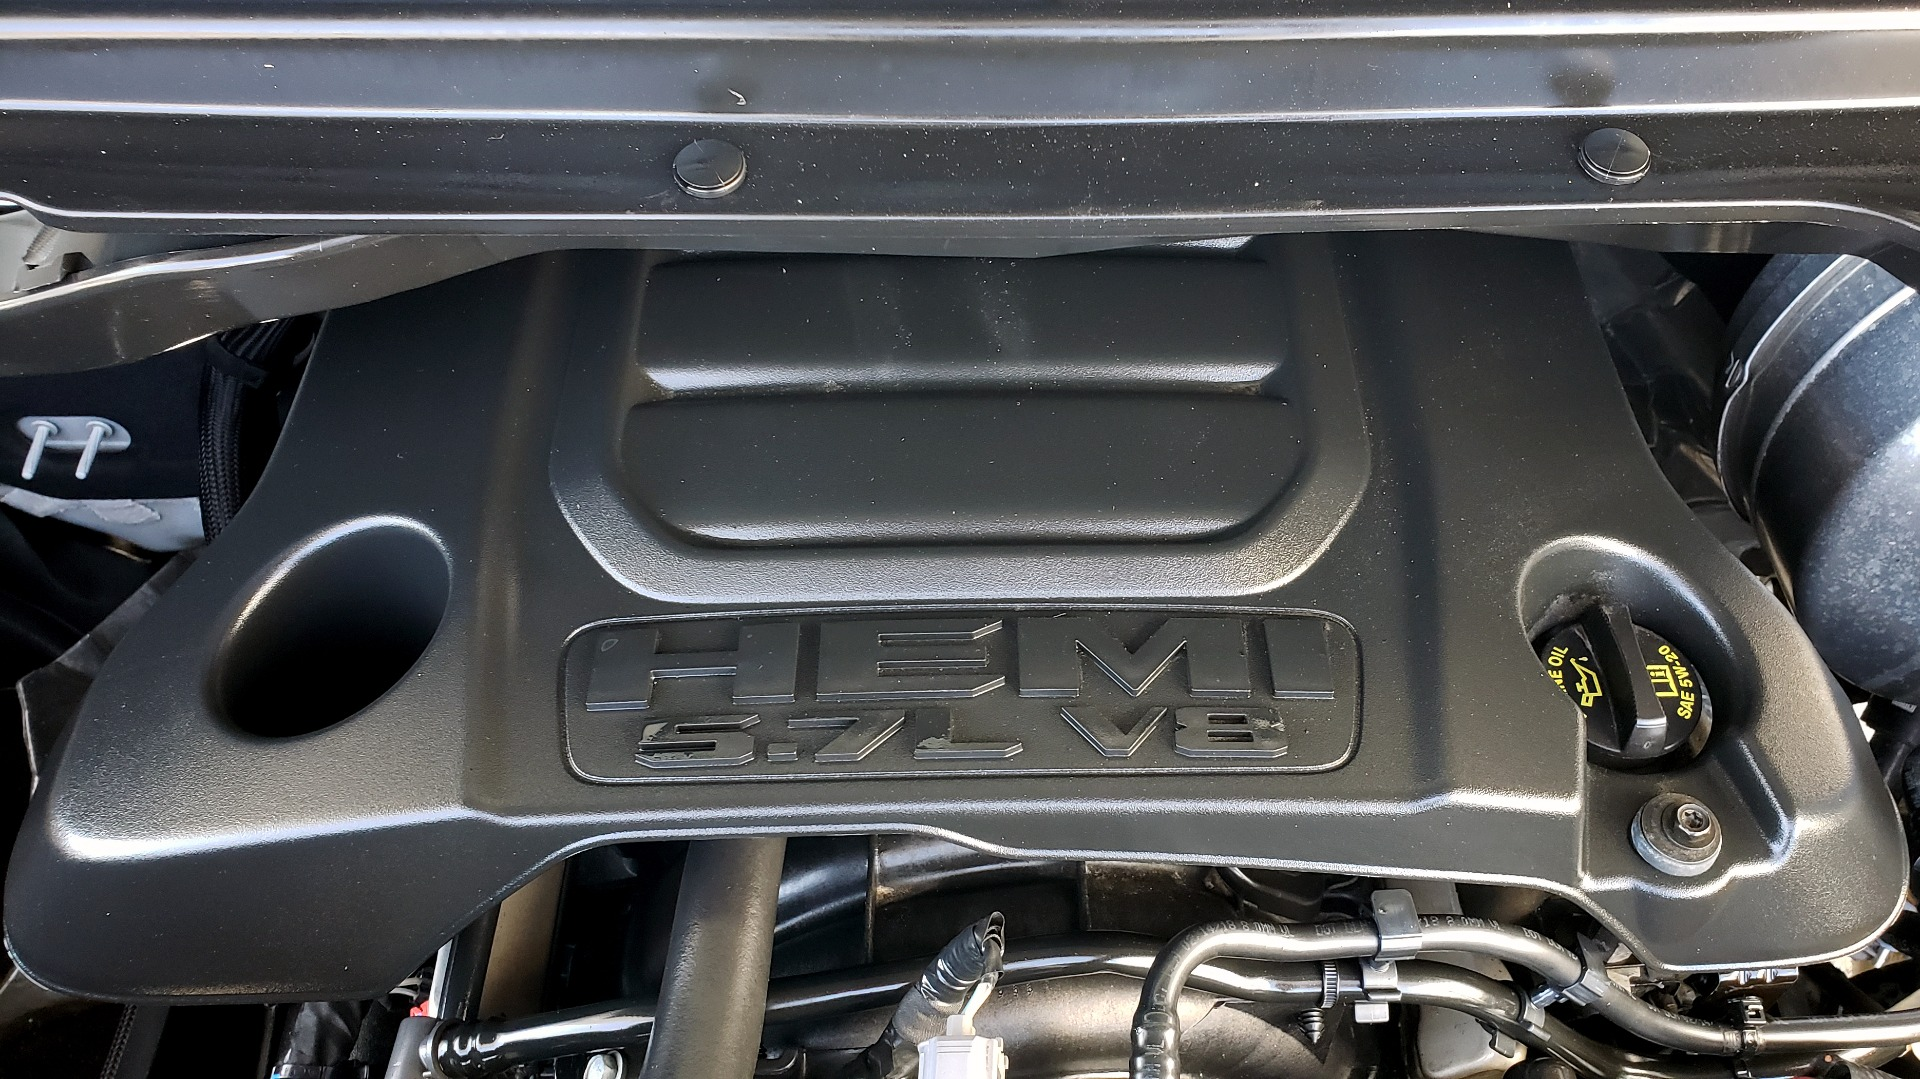 Used 2019 Ram 1500 REBEL CREWCAB 4X4 / 5.7L V8 HEMI / 8-SPD AUTO / REARVIEW for sale Sold at Formula Imports in Charlotte NC 28227 15